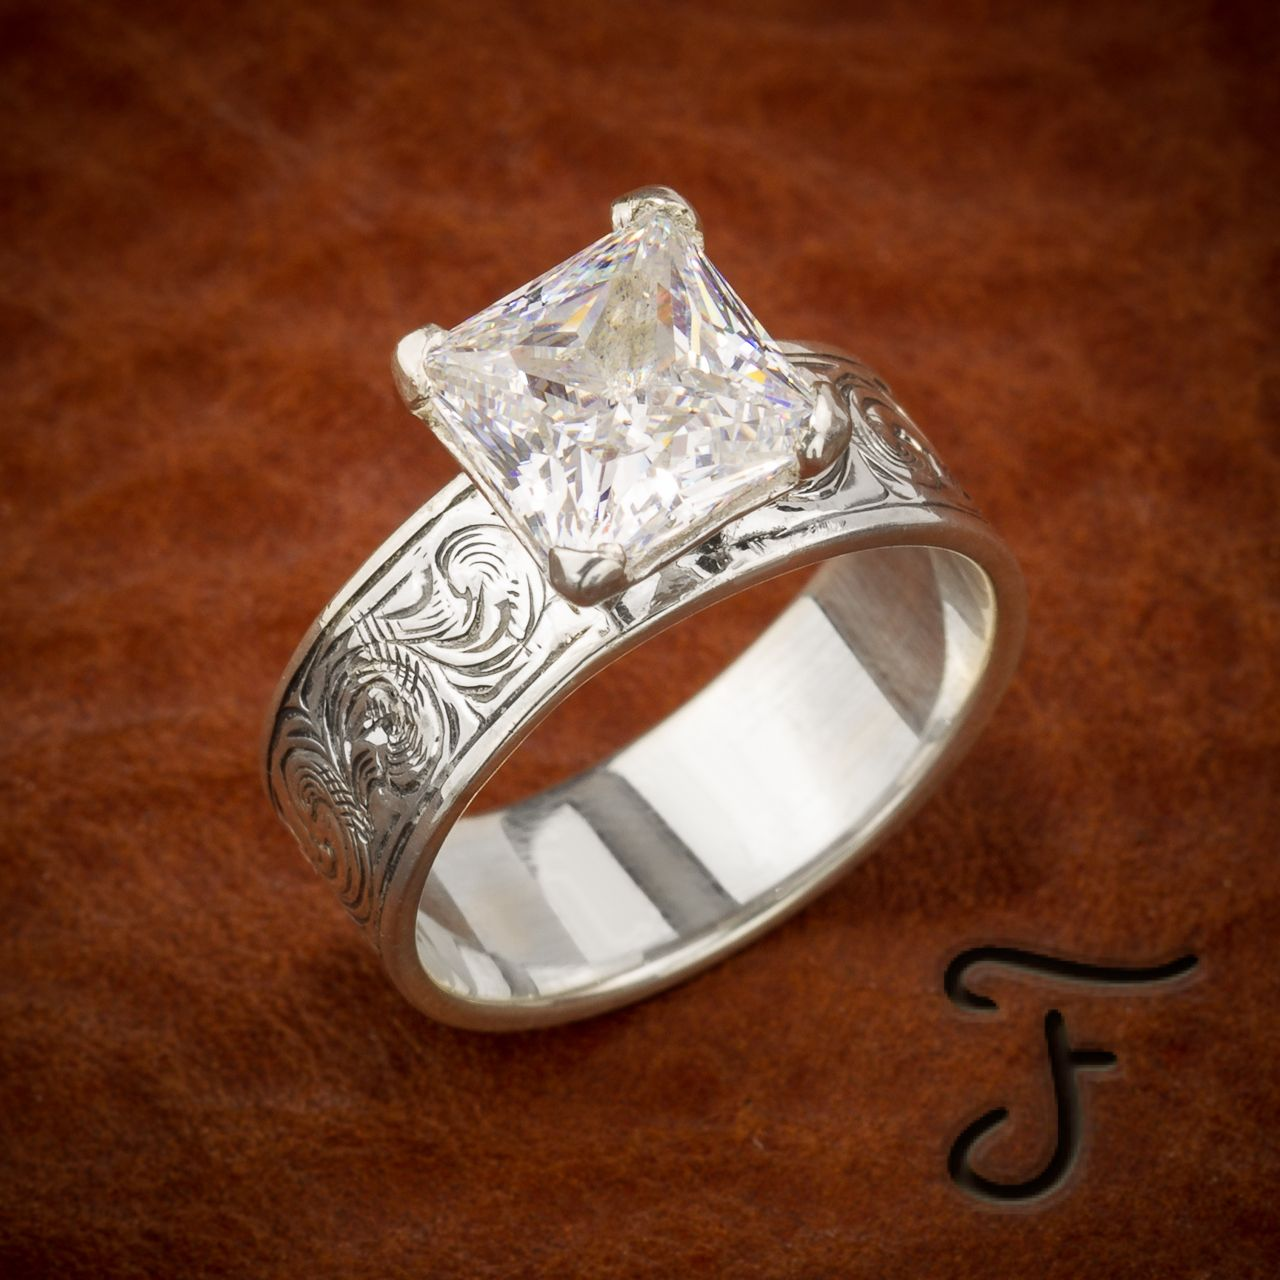 R20 Western wedding rings, Engagement rings, Wedding rings